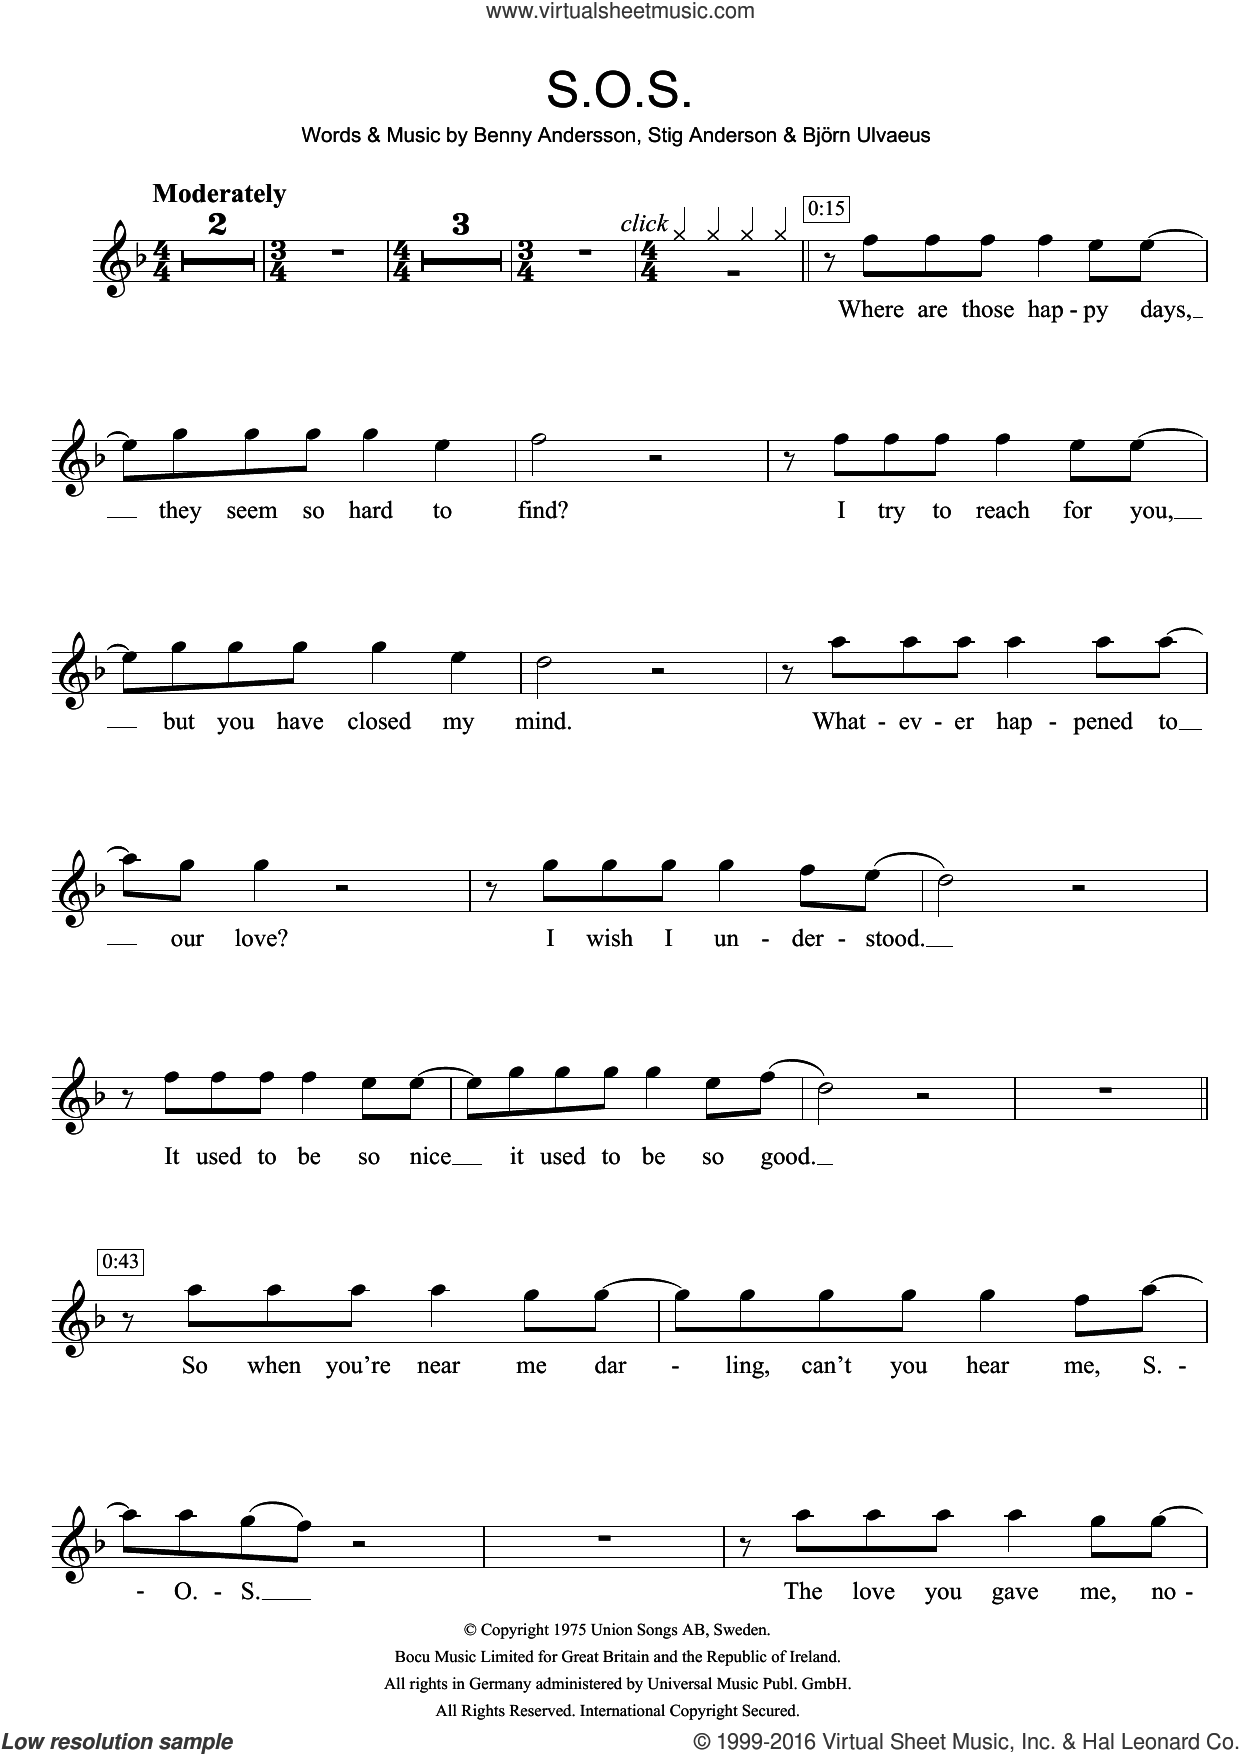 S.O.S. sheet music for violin solo by Stig Anderson, ABBA, Benny Andersson and Bjorn Ulvaeus. Score Image Preview.